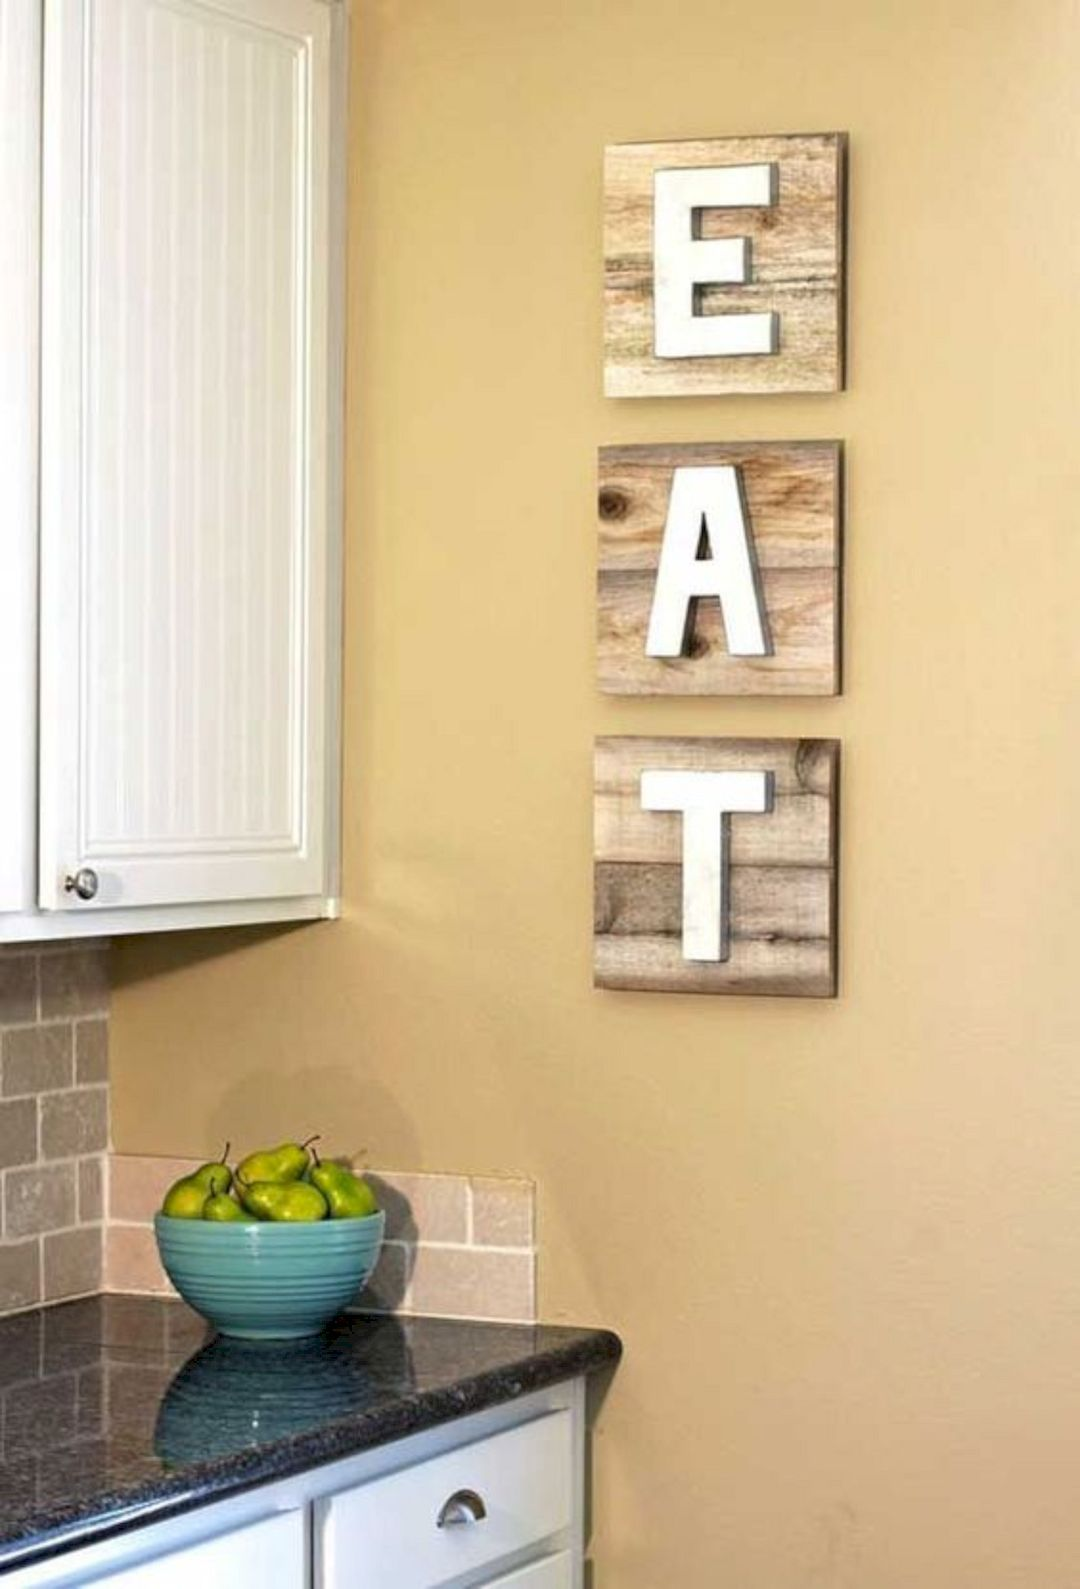 16 Stunning Kitchen Wall Decorating Ideas | Pinterest | Kitchen wall on kitchen wall art pinterest, casual dining room ideas pinterest, kitchen islands with seating, kitchen decorating theme ideas, kitchen artwork ideas, kitchen wall decor, white kitchen ideas pinterest, kitchen wall shelves decorating ideas, small kitchen ideas pinterest, vintage kitchen ideas pinterest, kitchen table ideas pinterest, kitchen wall plate, kitchen windows over sink ideas, kitchen backsplash ideas, farmhouse kitchen ideas pinterest, kitchen wall signs sayings, kitchen curtains ideas pinterest, kitchen decorating ideas for walls, kitchen decor pinterest, kitchen decorating your walls,